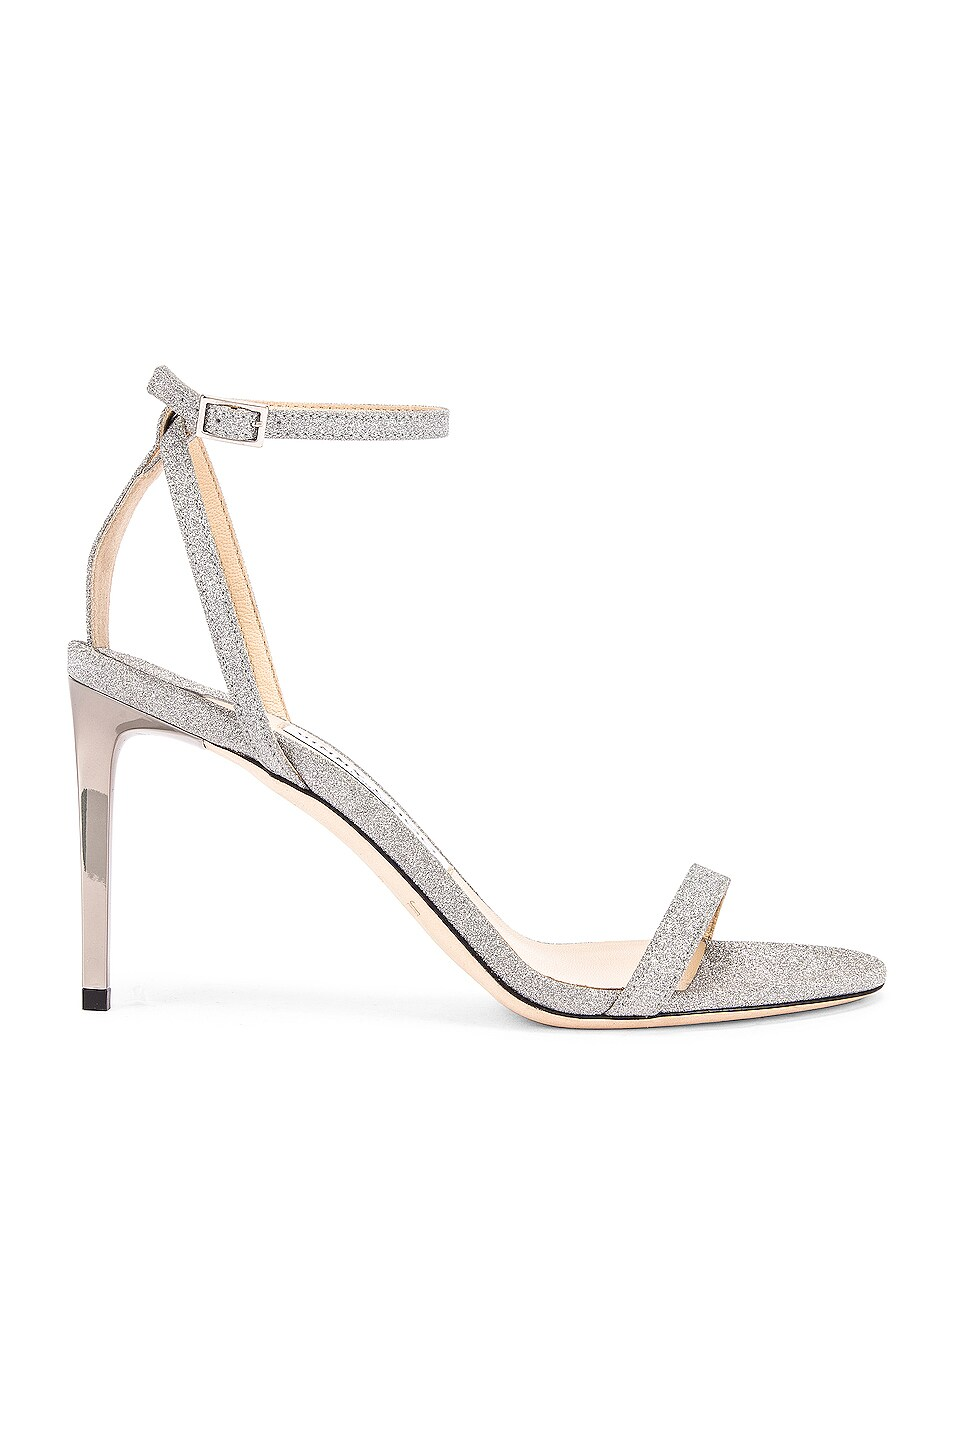 Image 1 of Jimmy Choo Minny 85 Fine Glitter Sandal in Silver